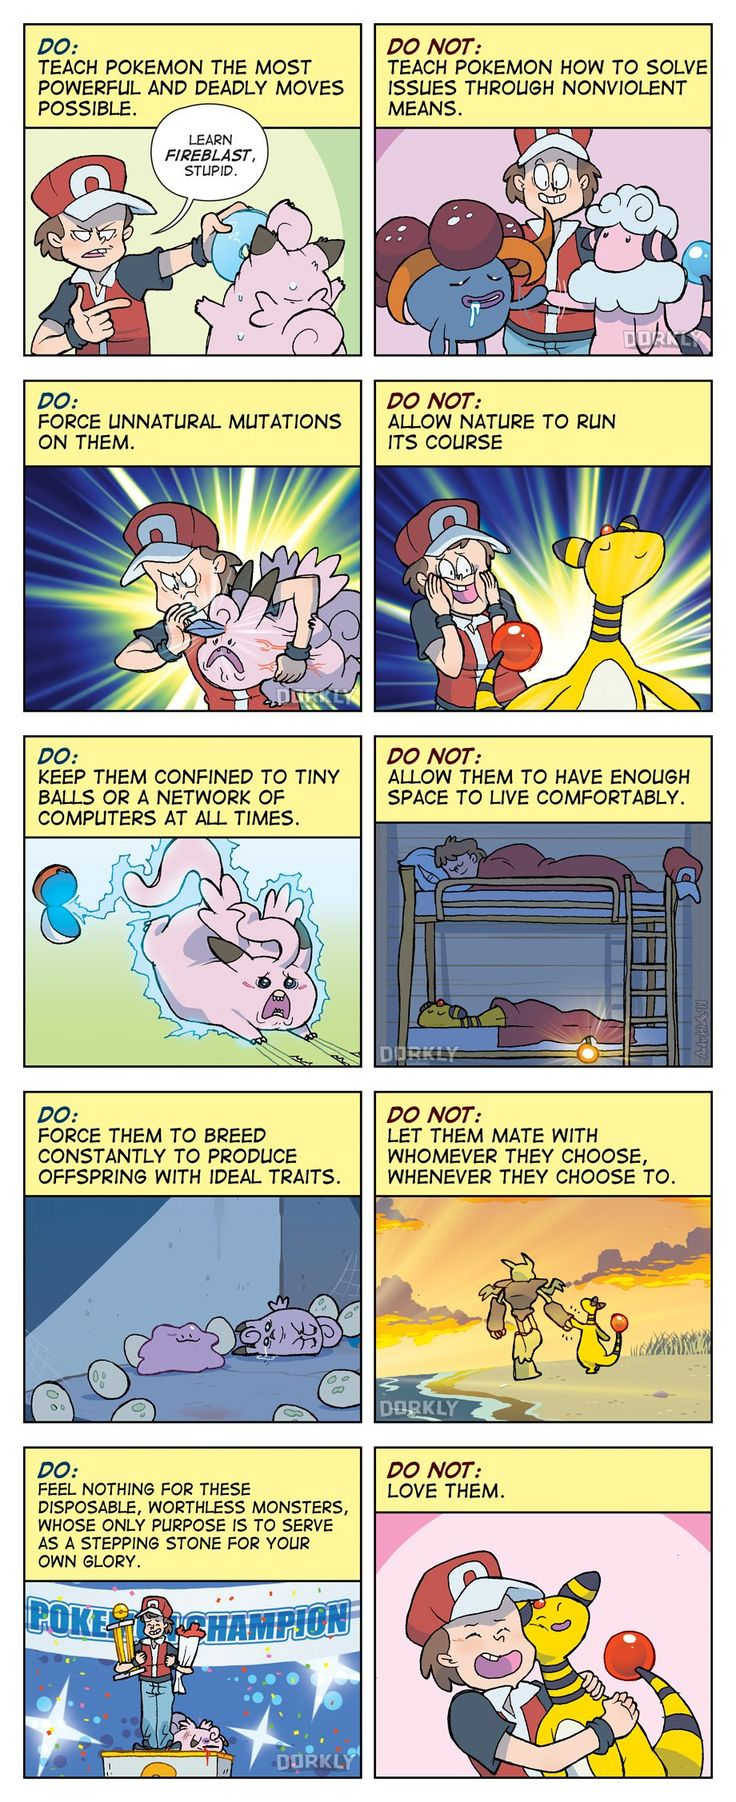 The Dos And Do Nots Of Pokemon Ownership With Images -5123